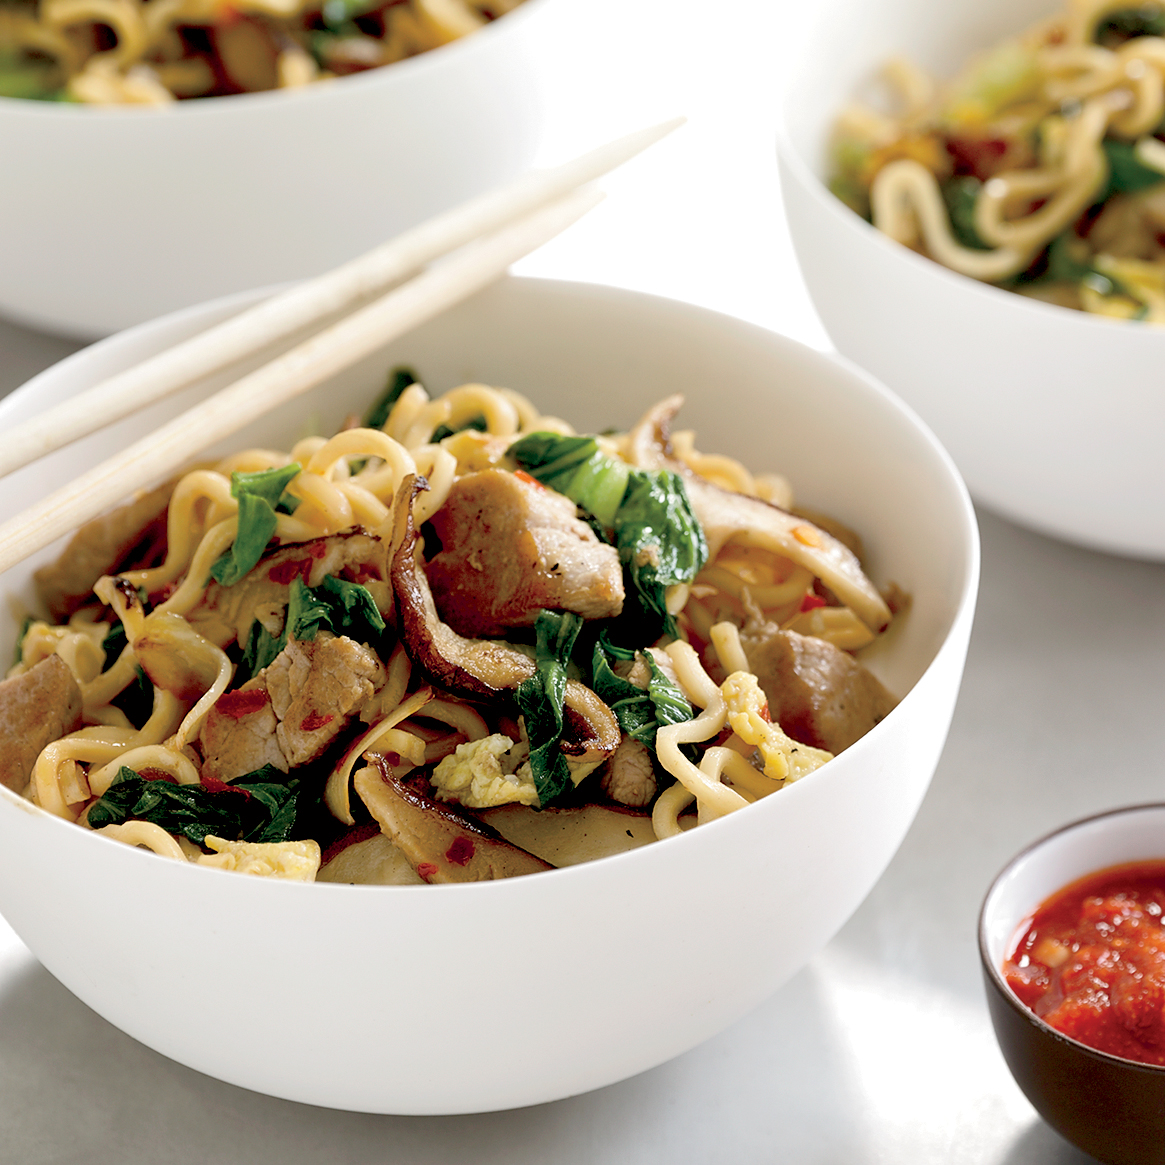 original-200811-r-asian-pork-stir-fry.jpg